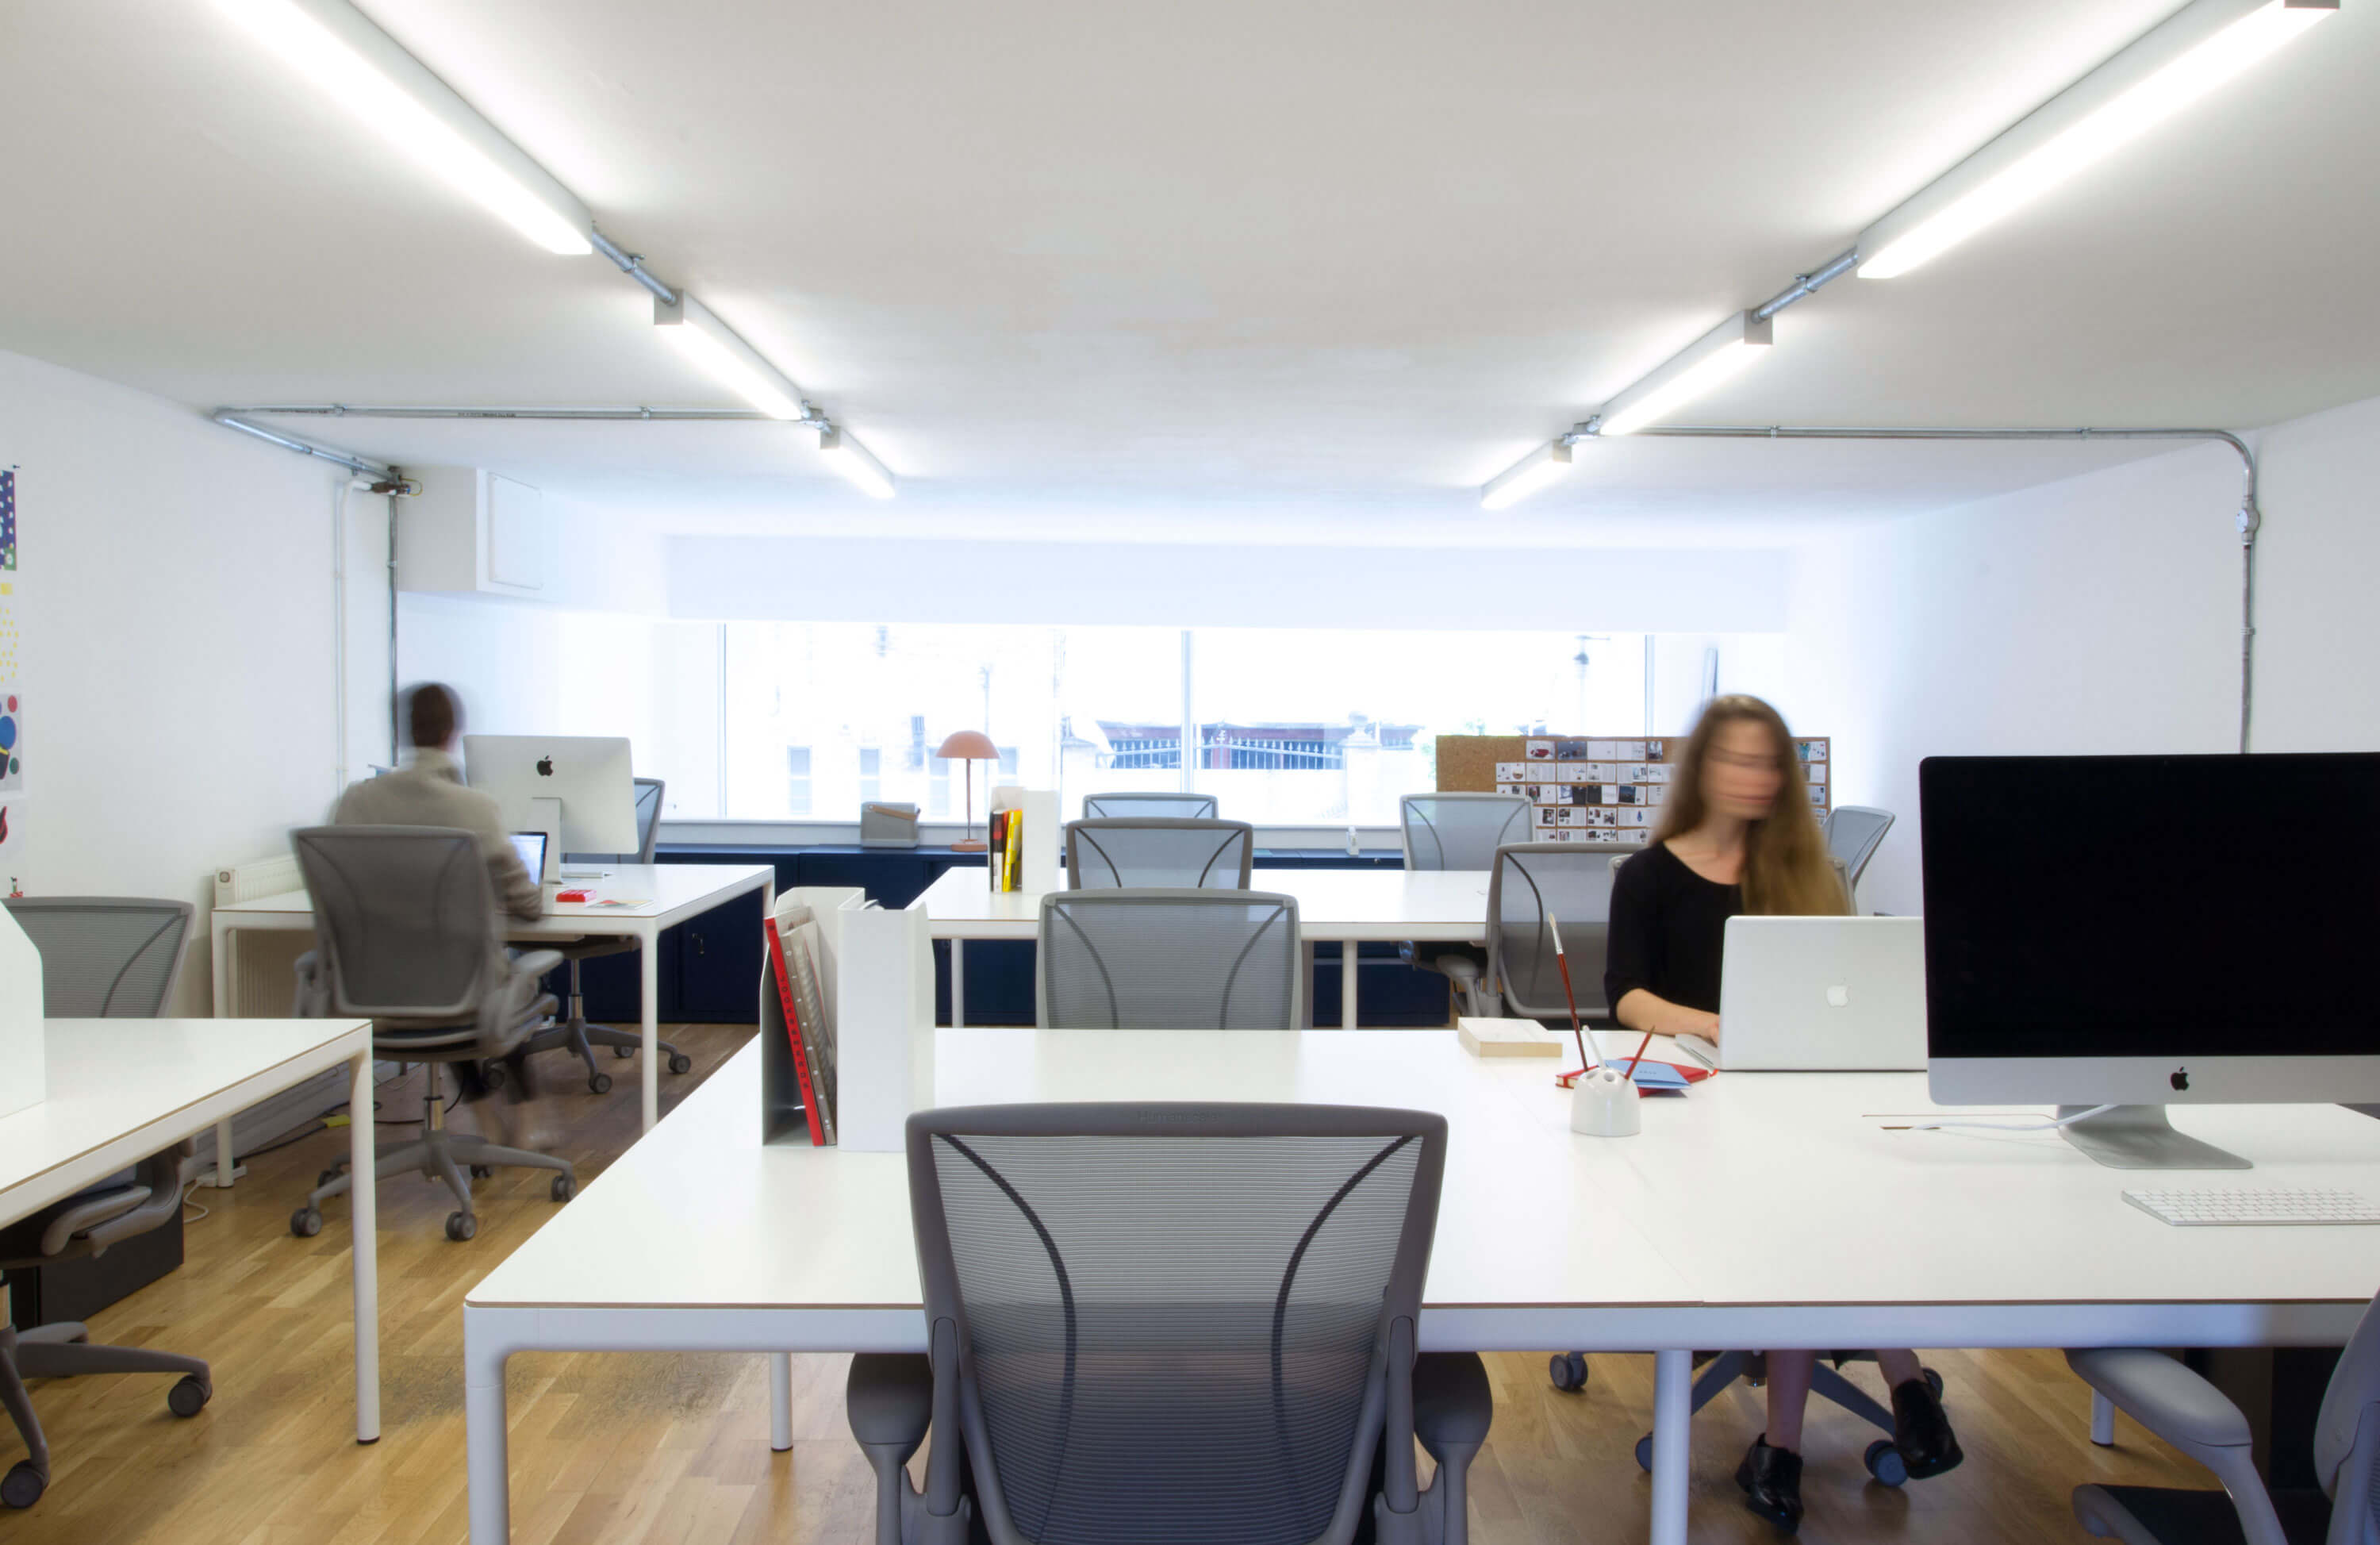 The Tack Press office is a shared creative space between Jocks & Nerds, Disegno and Tack Studio.